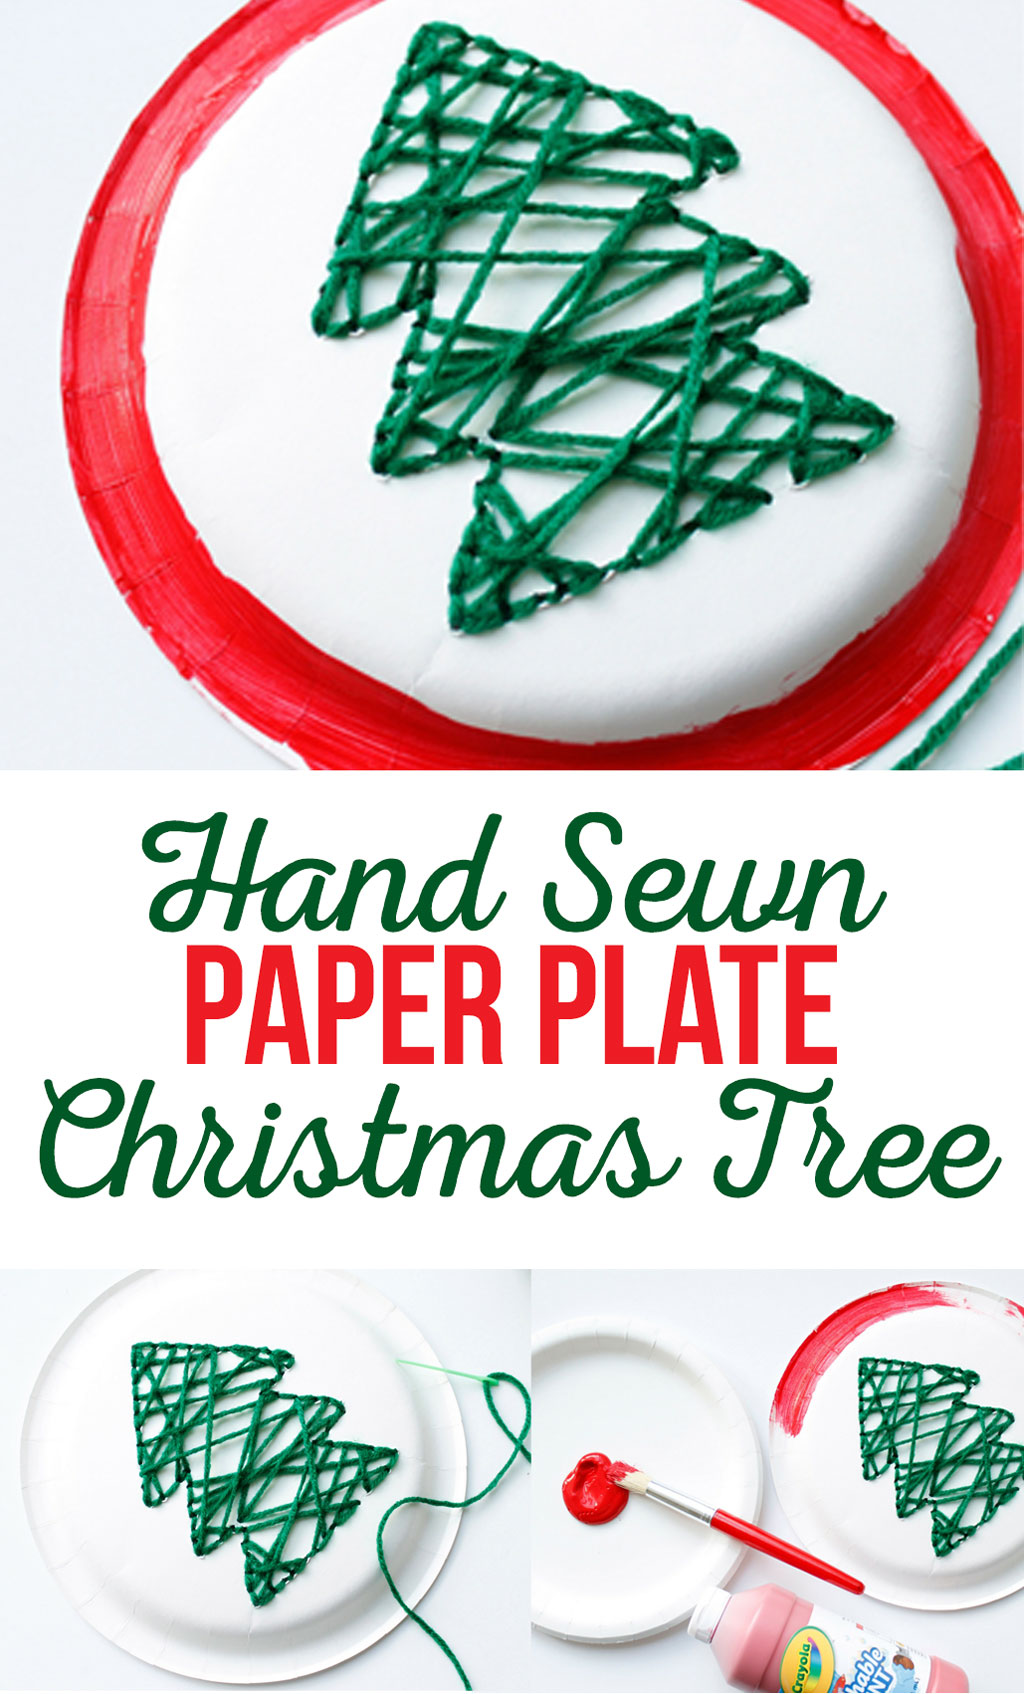 Hand-Sewn Paper Plate Christmas Tree Craft for kids.